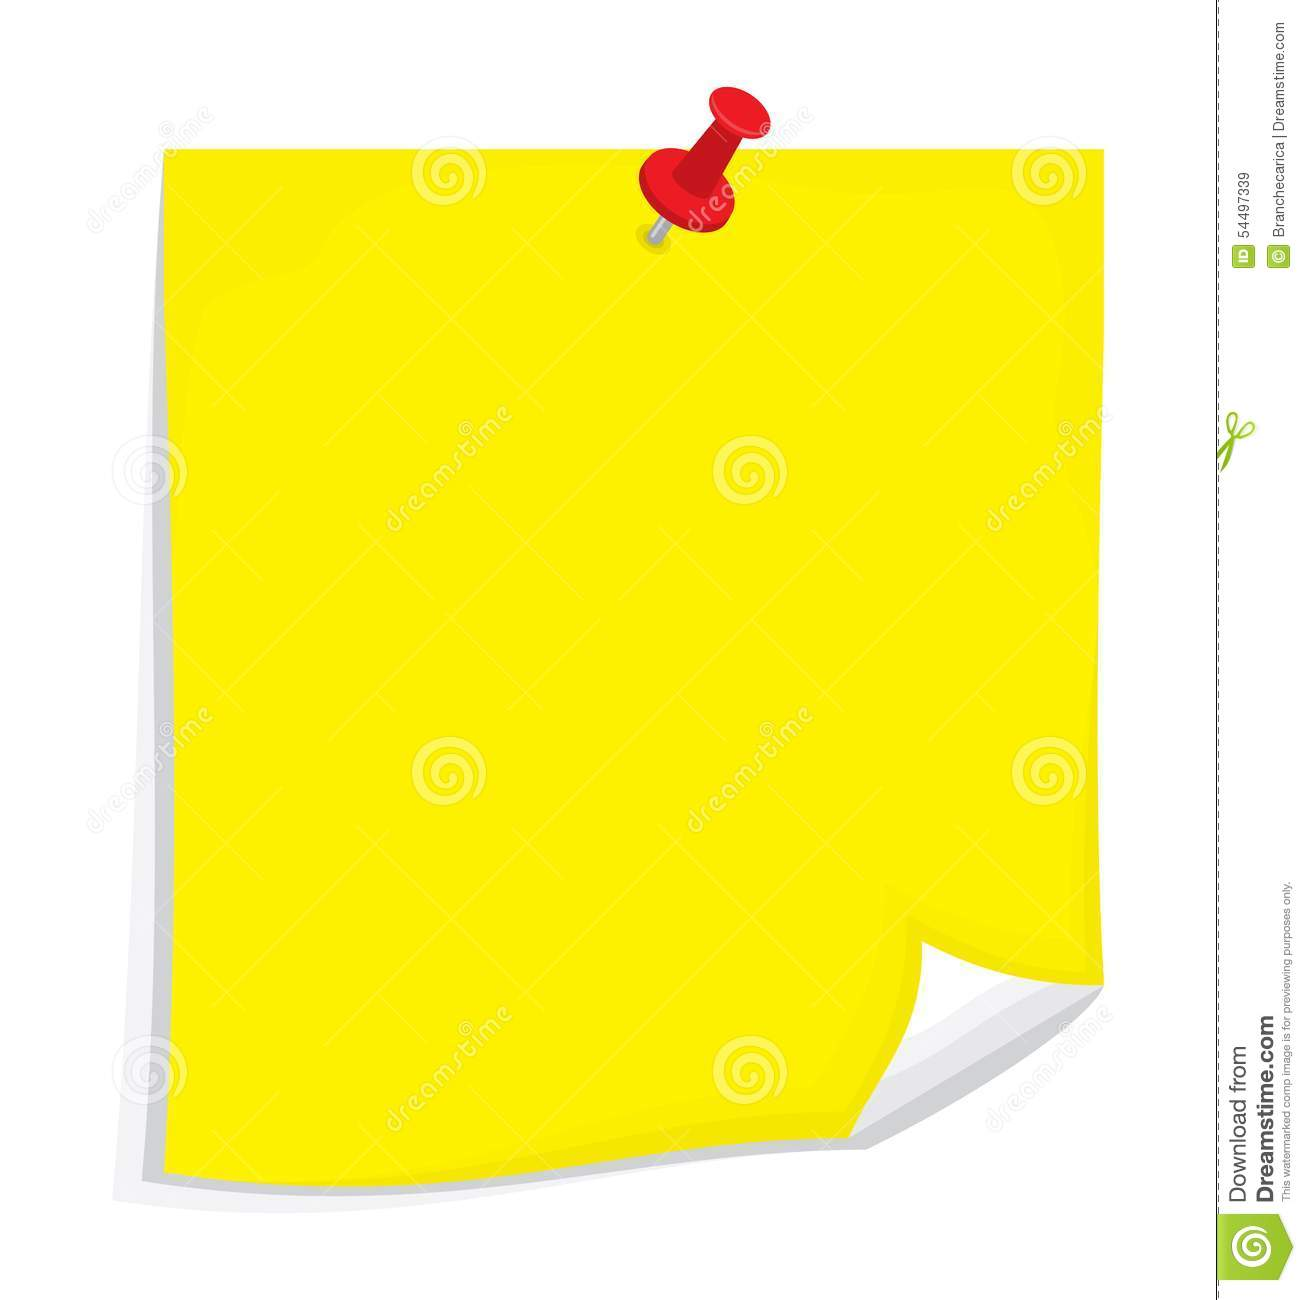 vector sticky note stock illustration illustration of background rh dreamstime com post it note vector sticky note vector free download